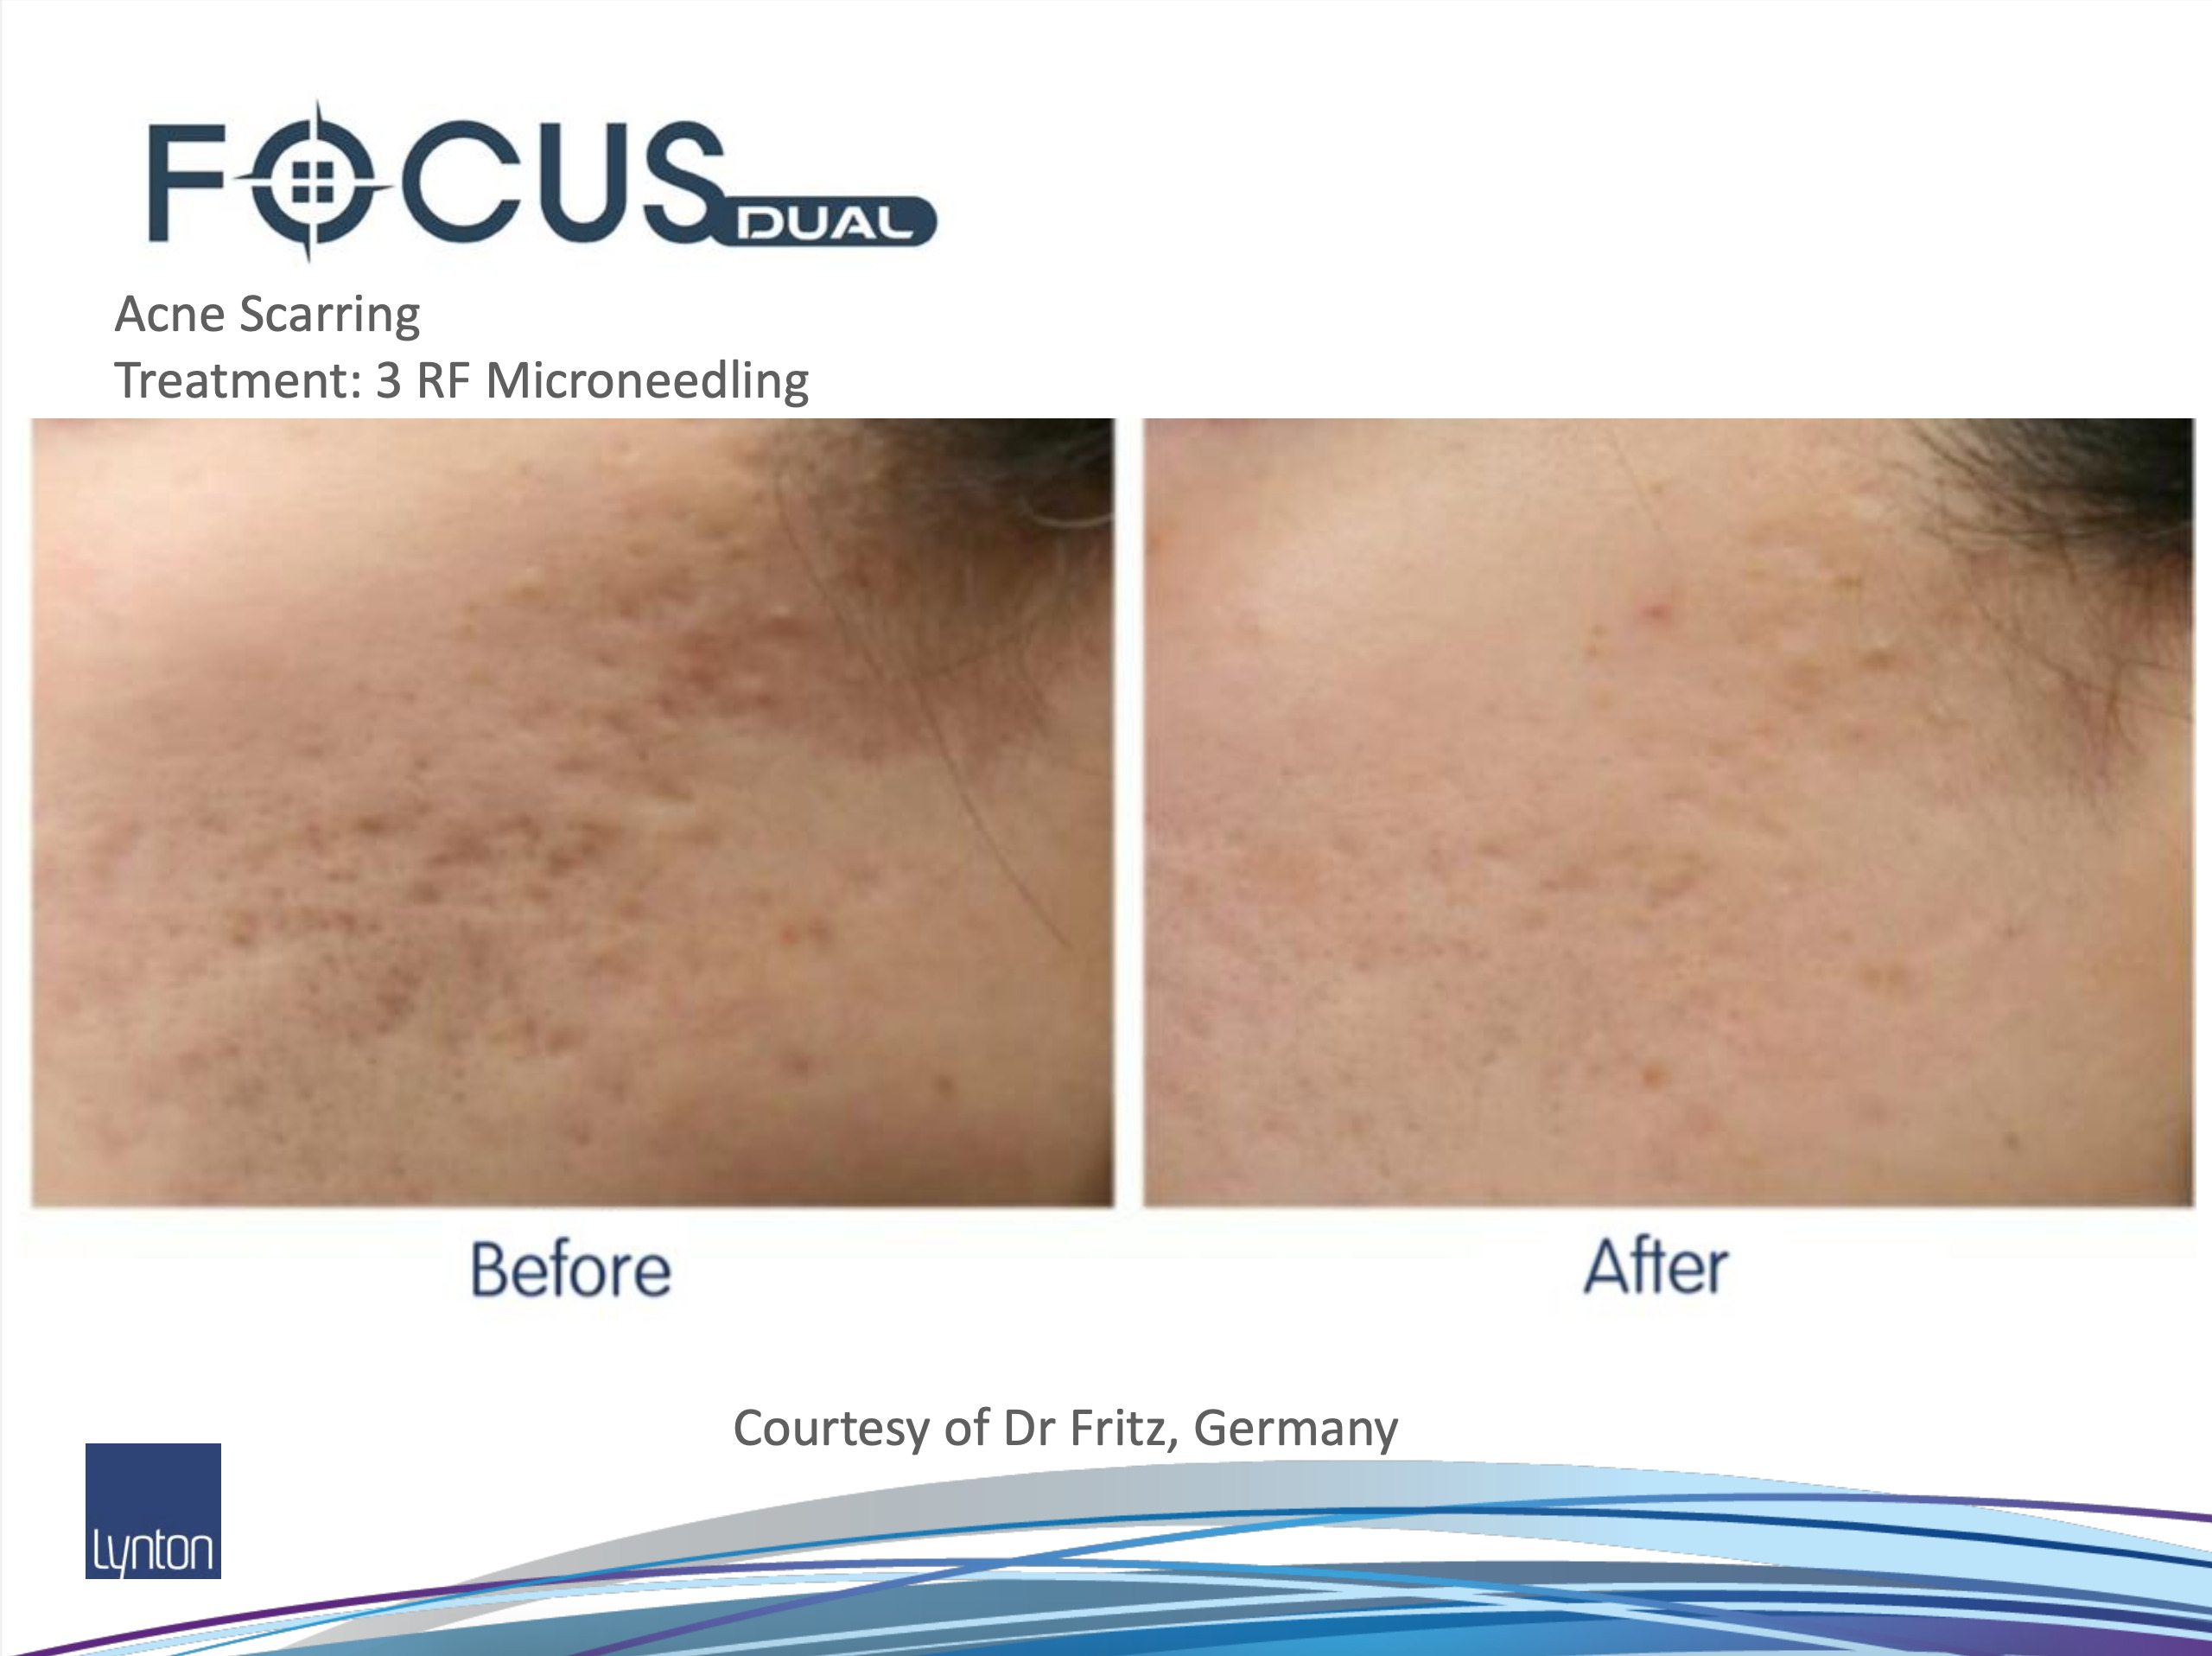 Before and After RF Microneedling on acne scarring